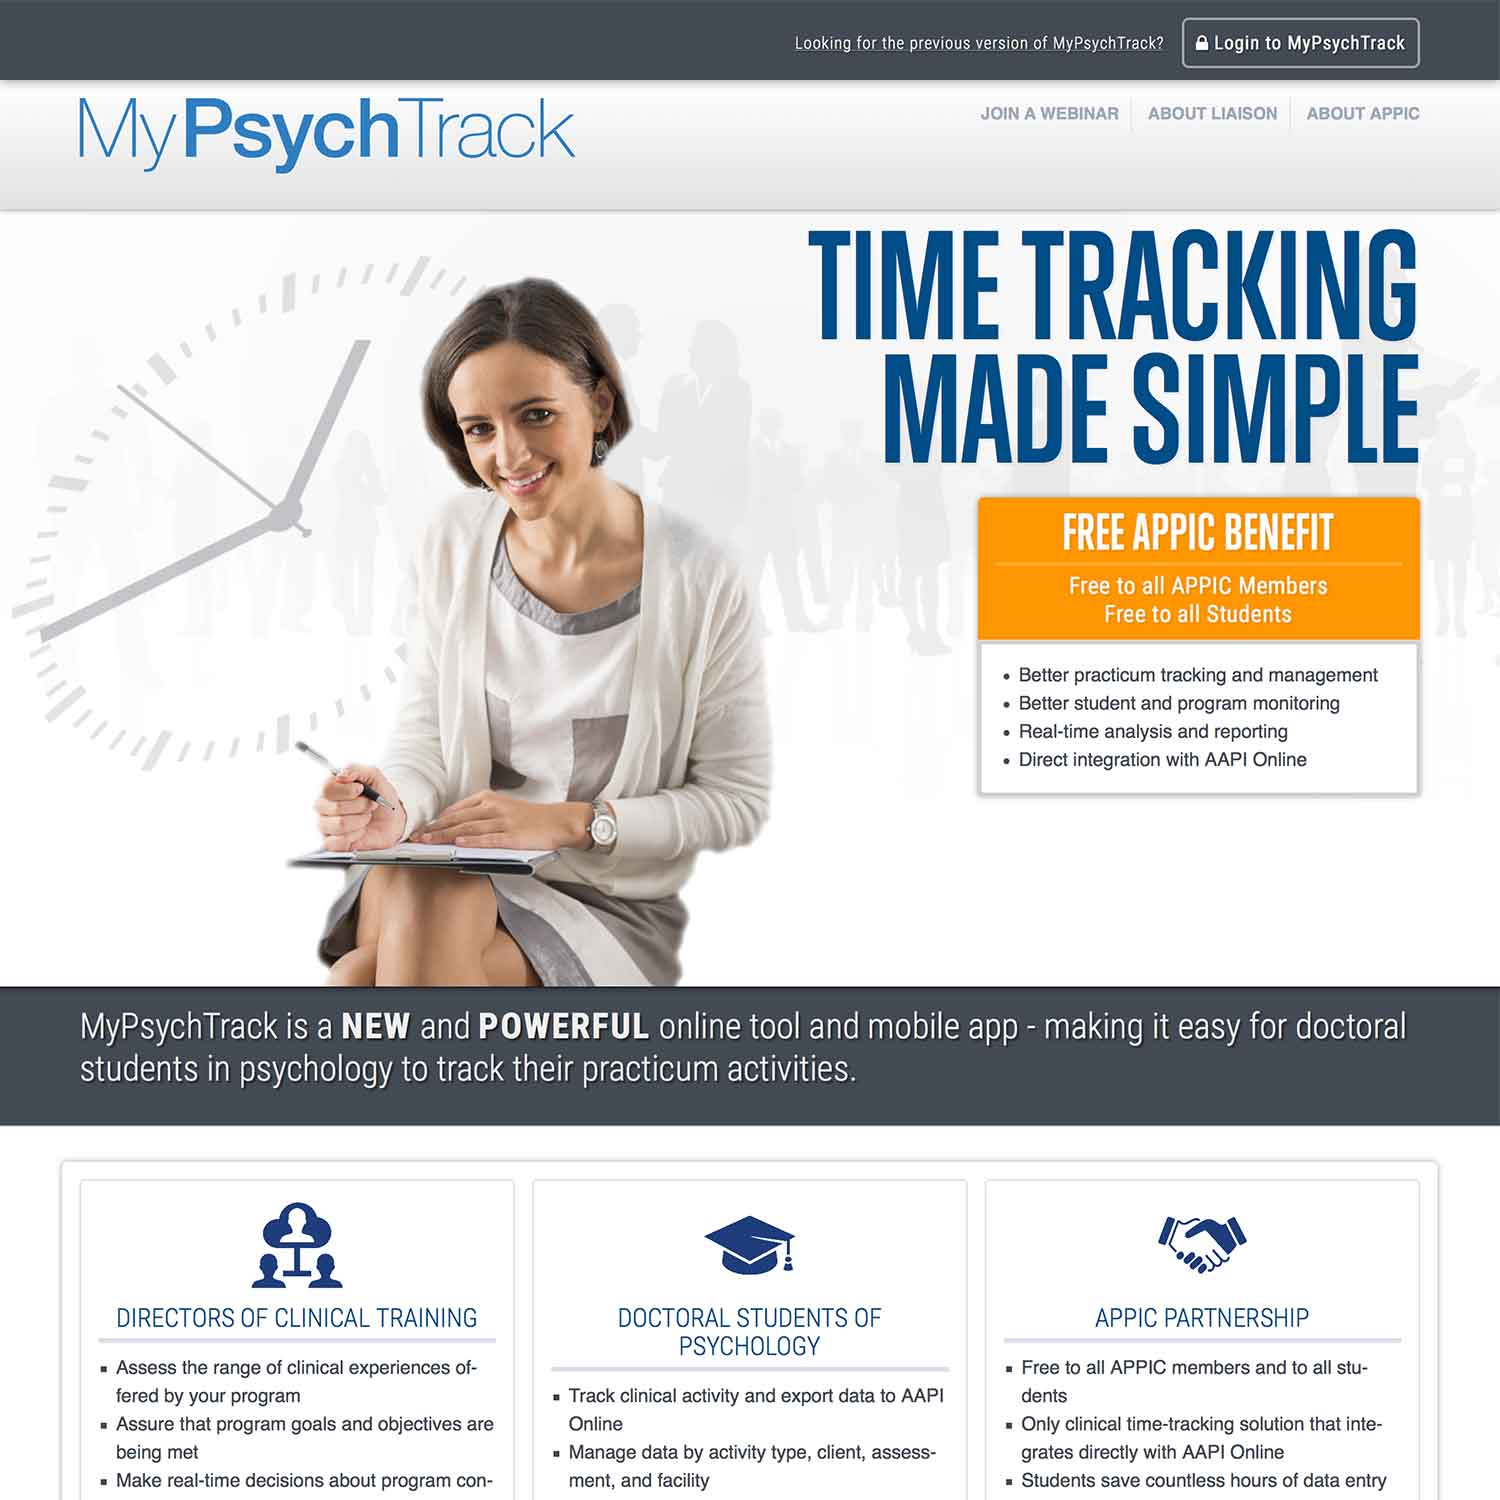 a screenshot of the MyPsychTrack marketing website